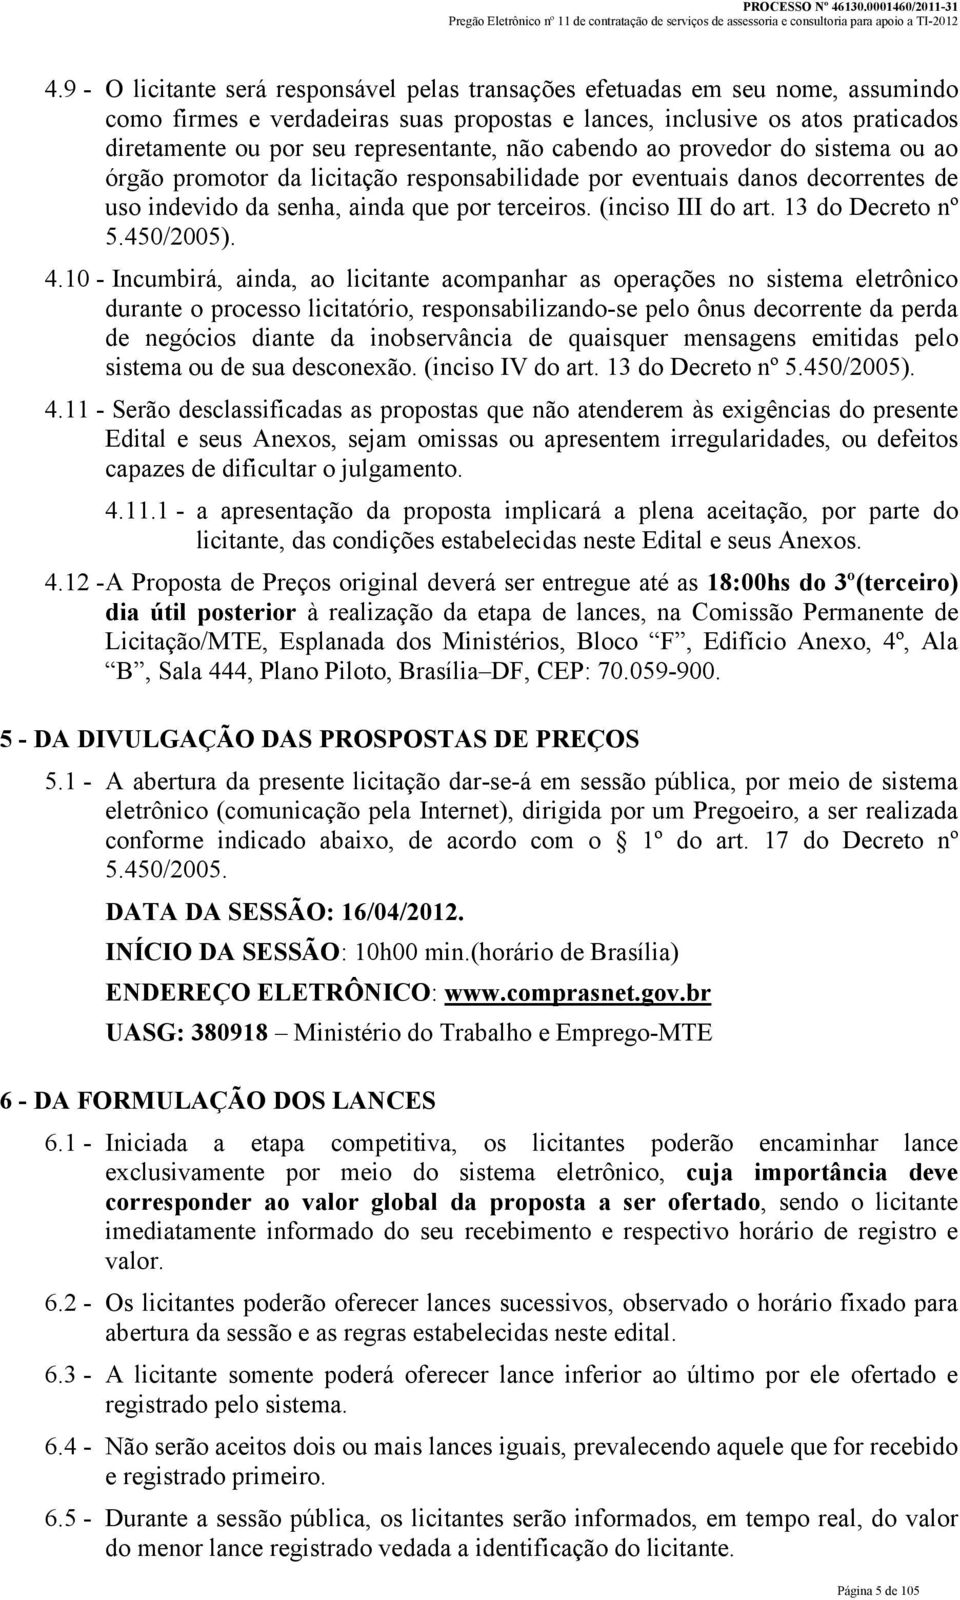 (inciso III do art. 13 do Decreto nº 5.450/2005). 4.